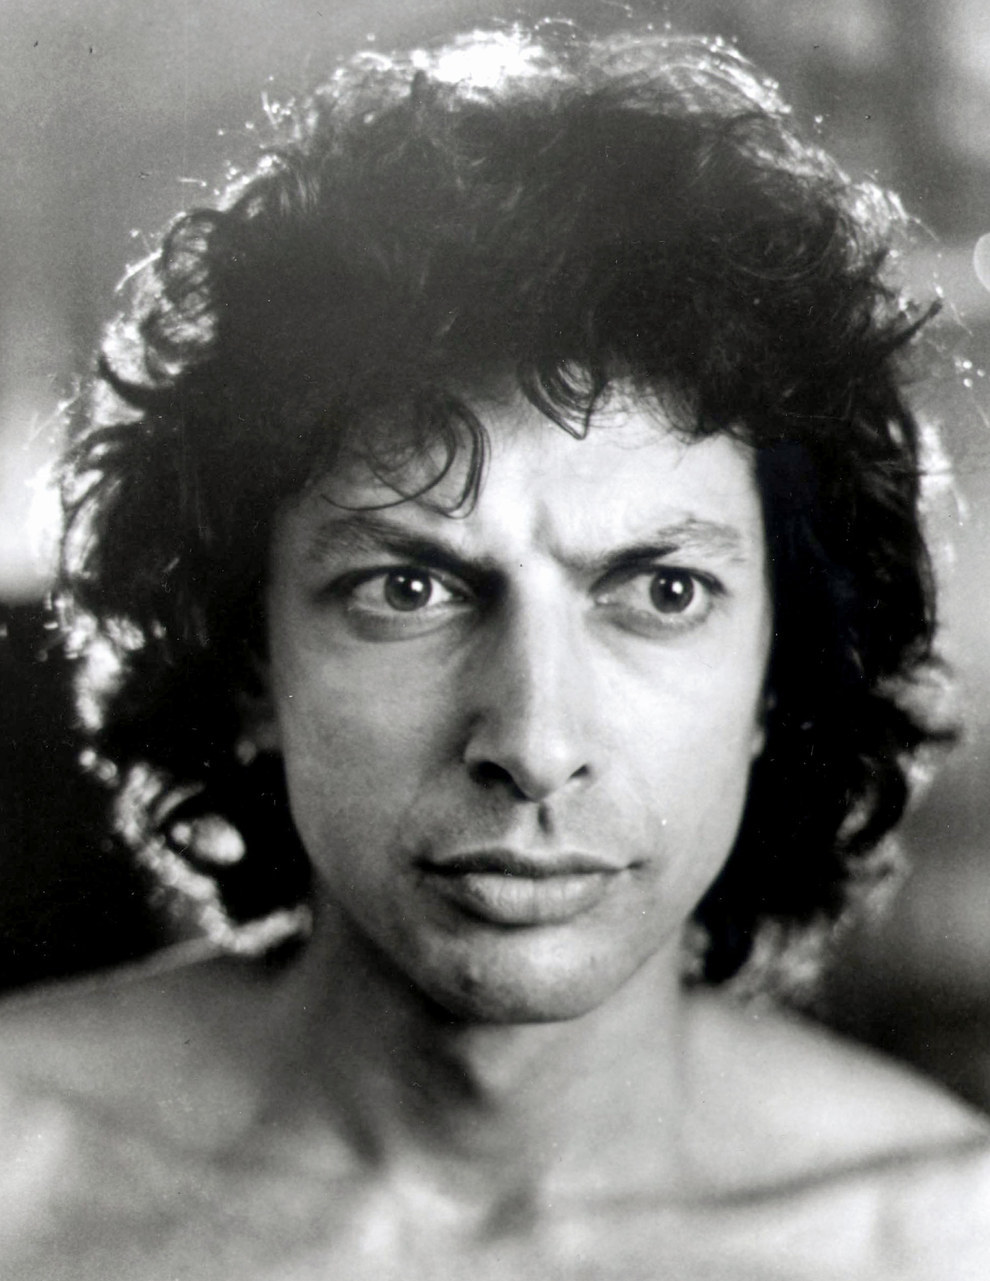 young Jeff Goldblum